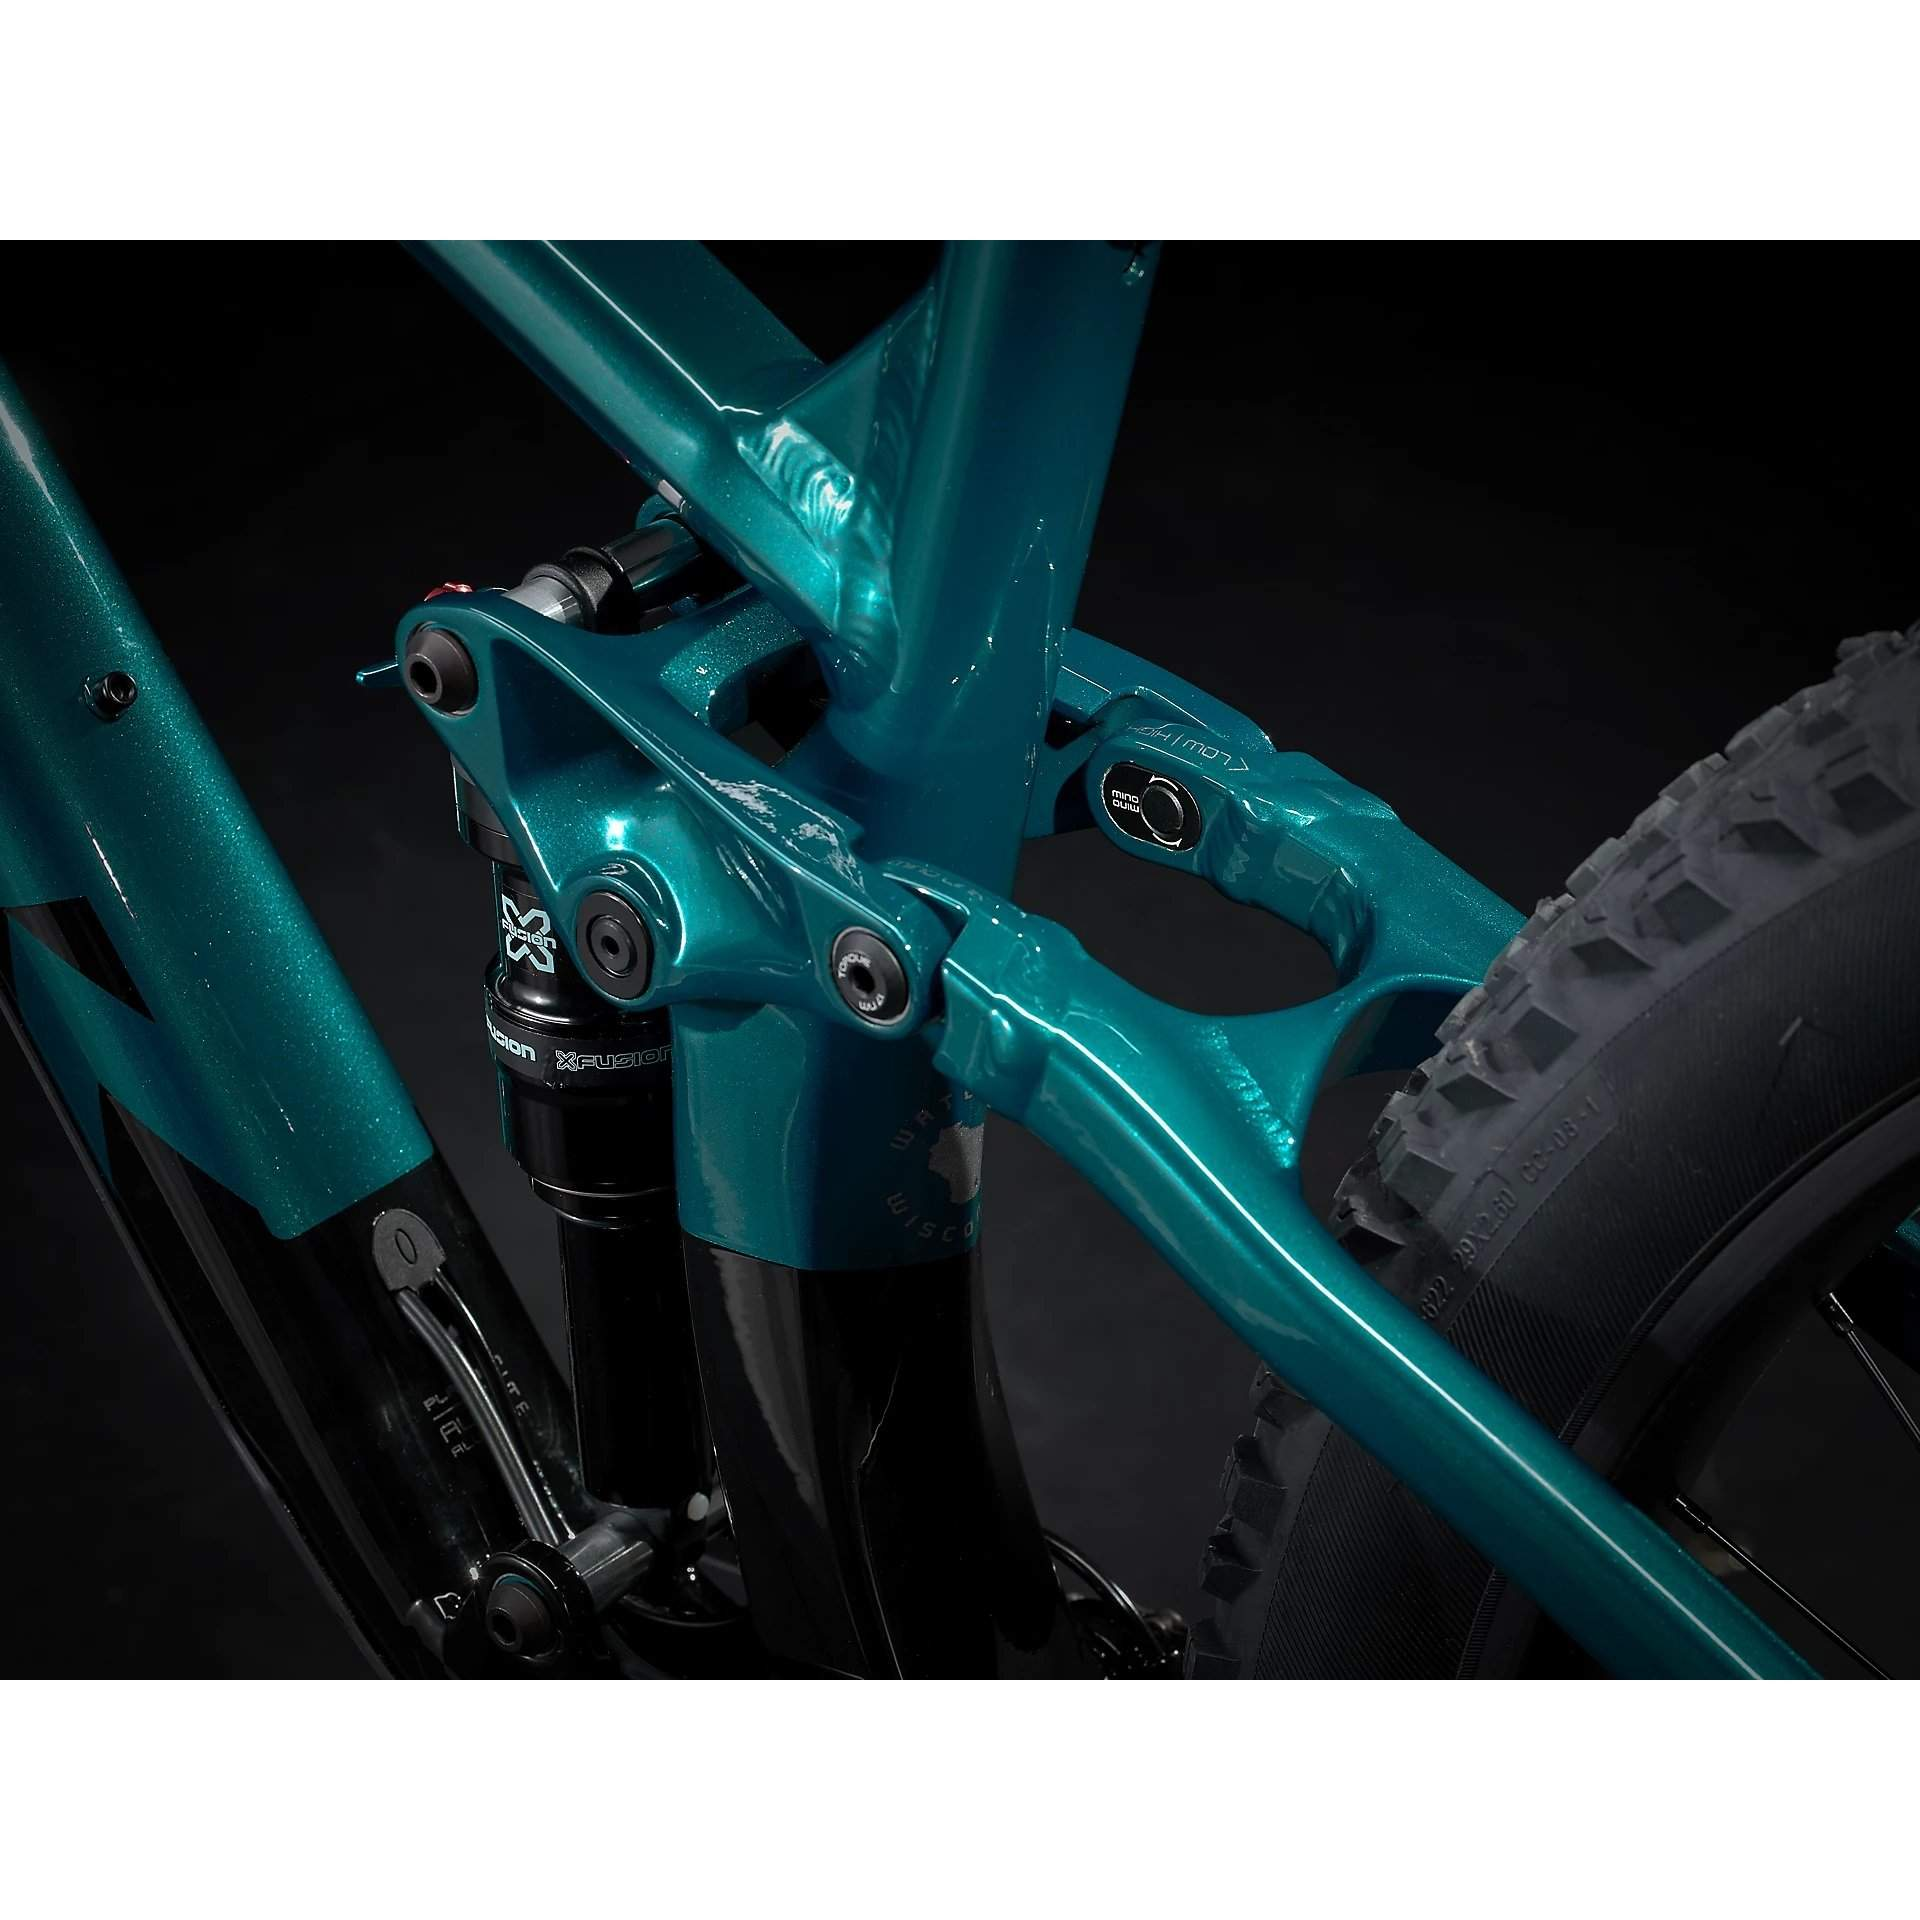 ROWER TREK FUEL EX 5 DARK AQUATIC|TREK BLACK 7